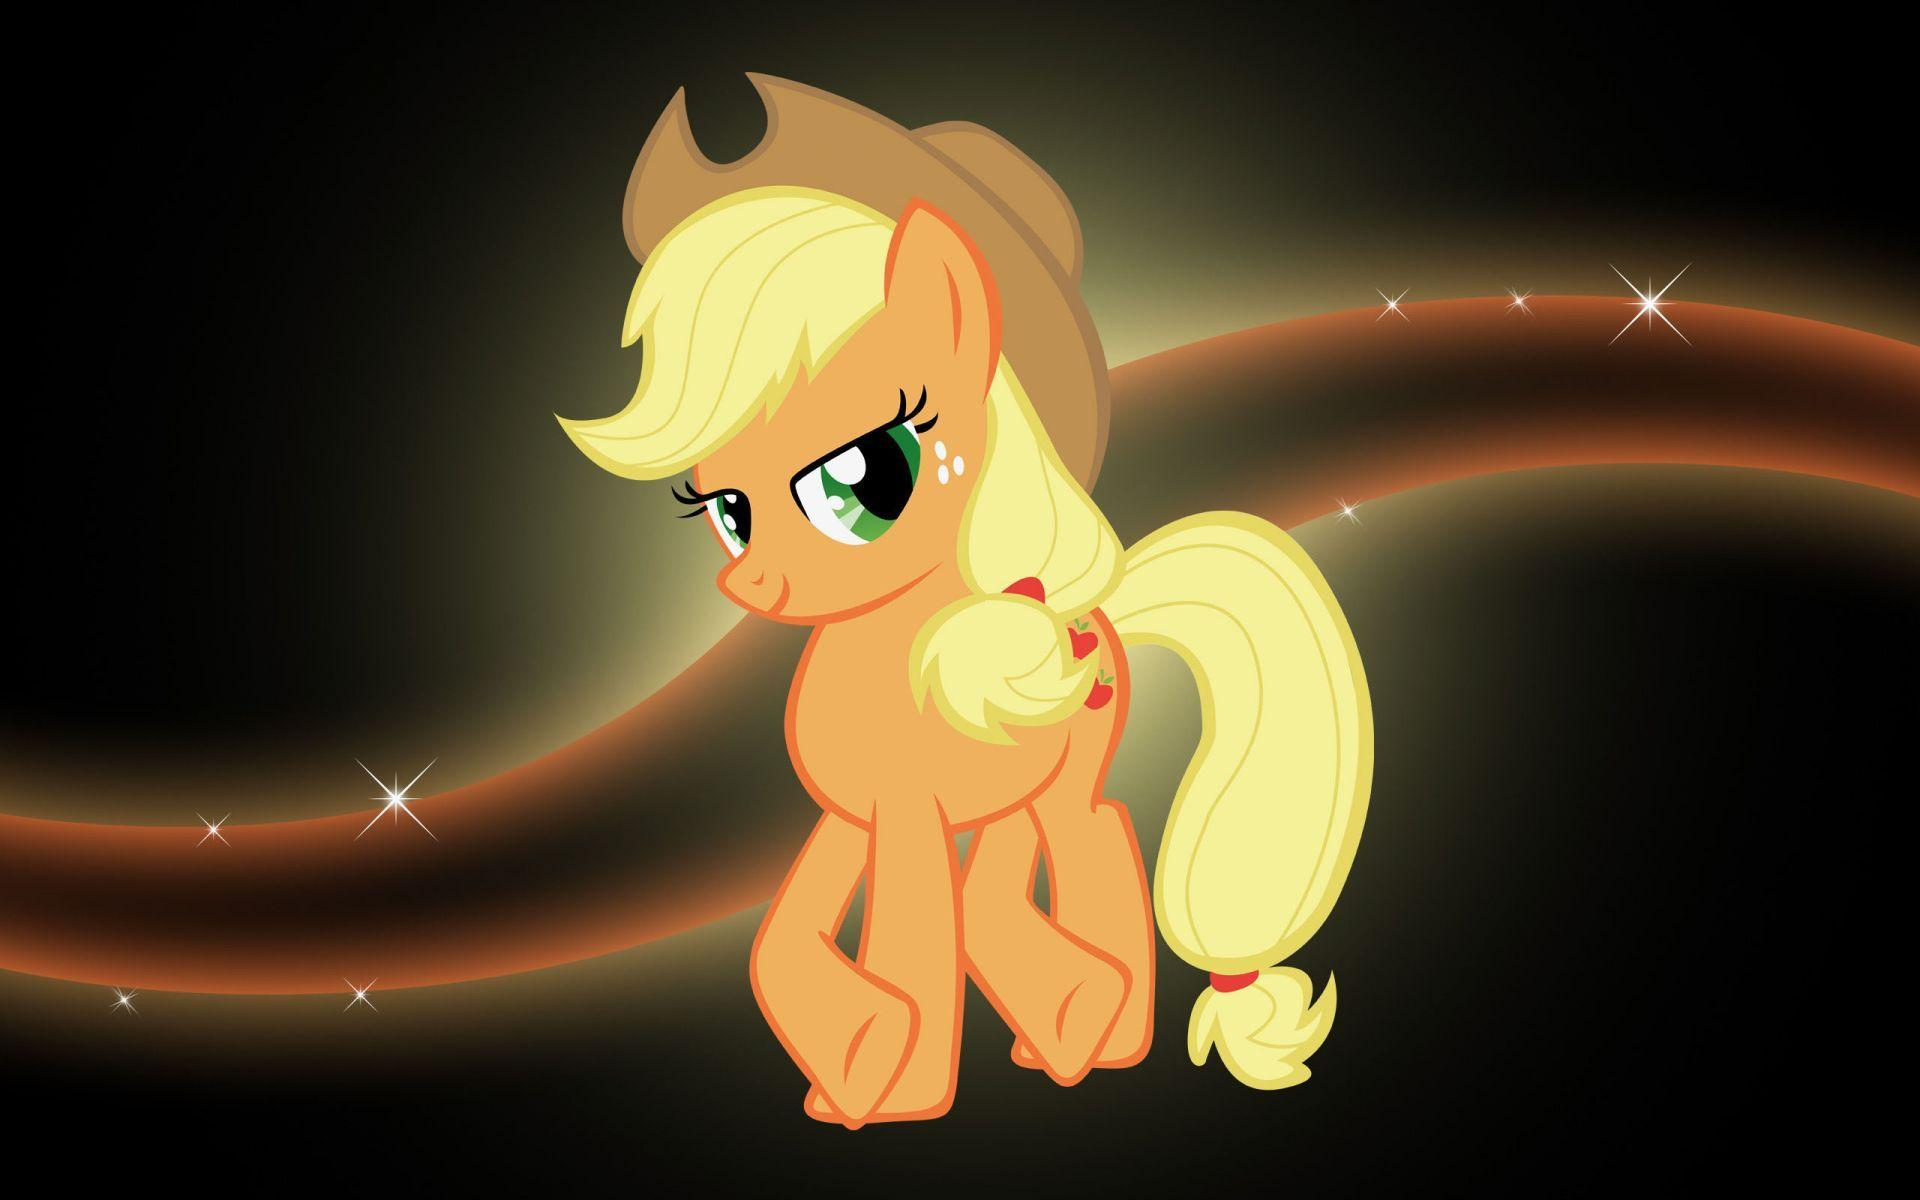 Cute Applejack Graphic | HD Cartoons Wallpapers for Mobile and Desktop